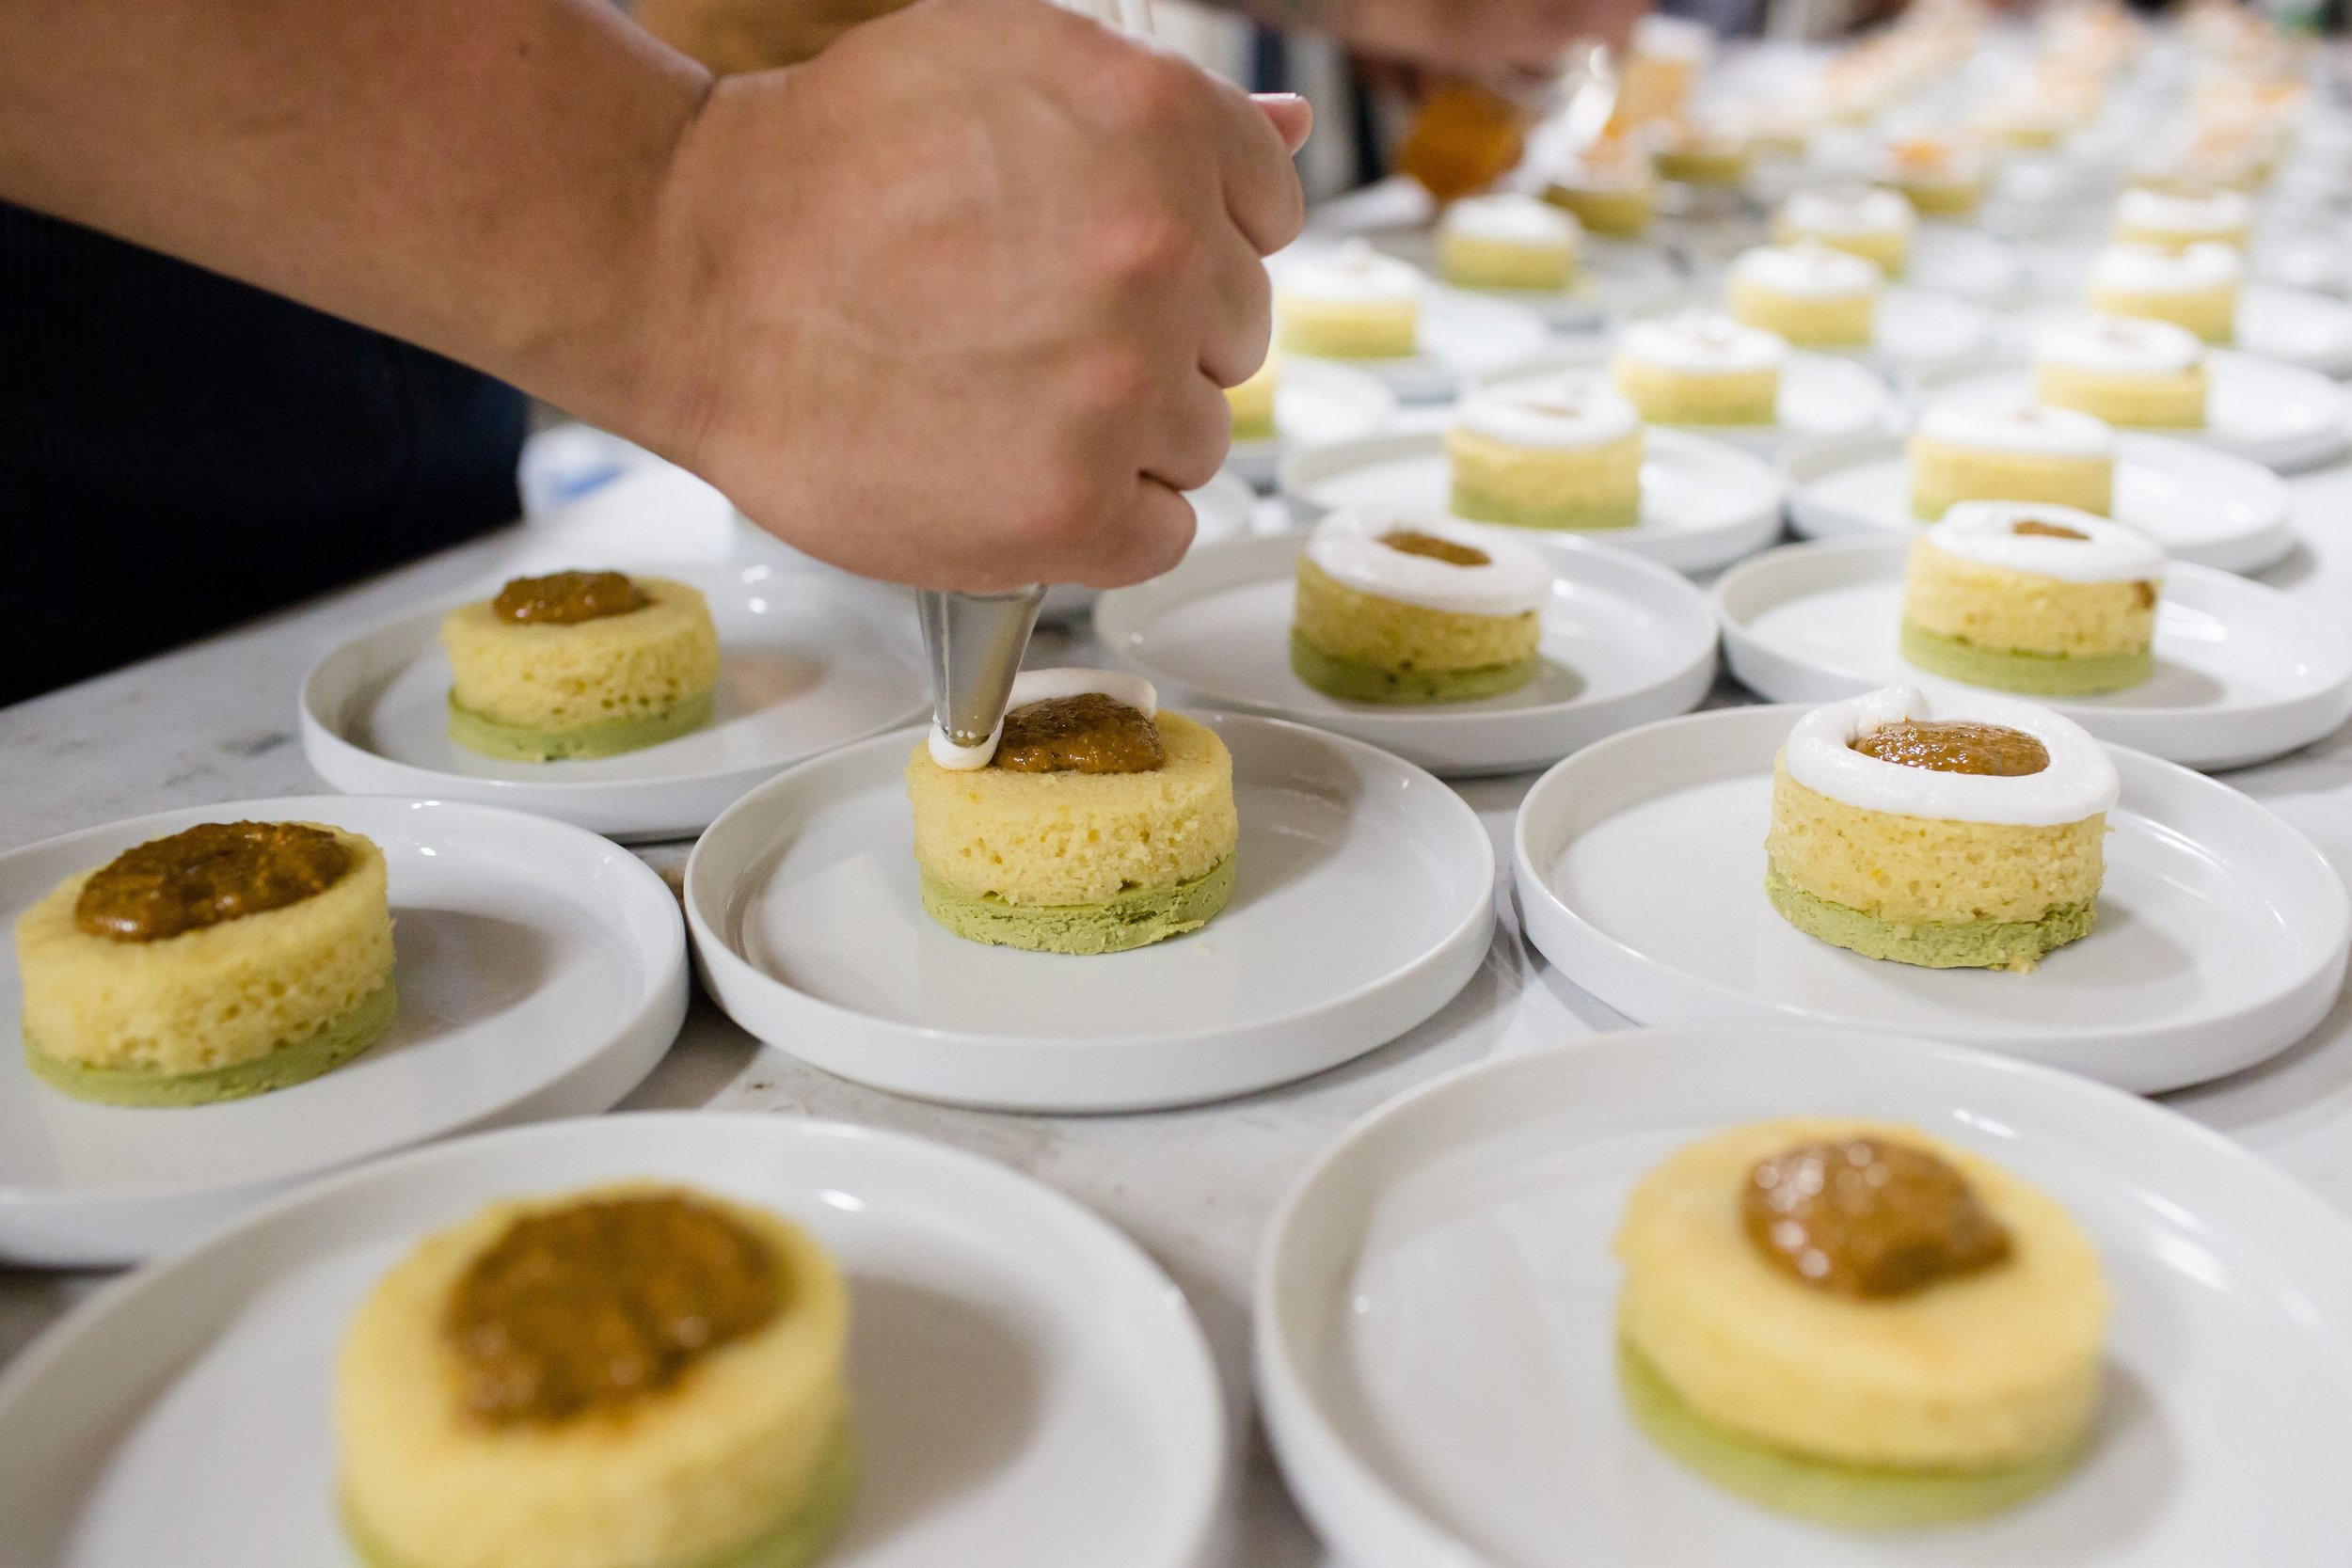 Matcha custard and chai sorbet w/citrus cake, honey meringue and pistachio by chef Brad Wise